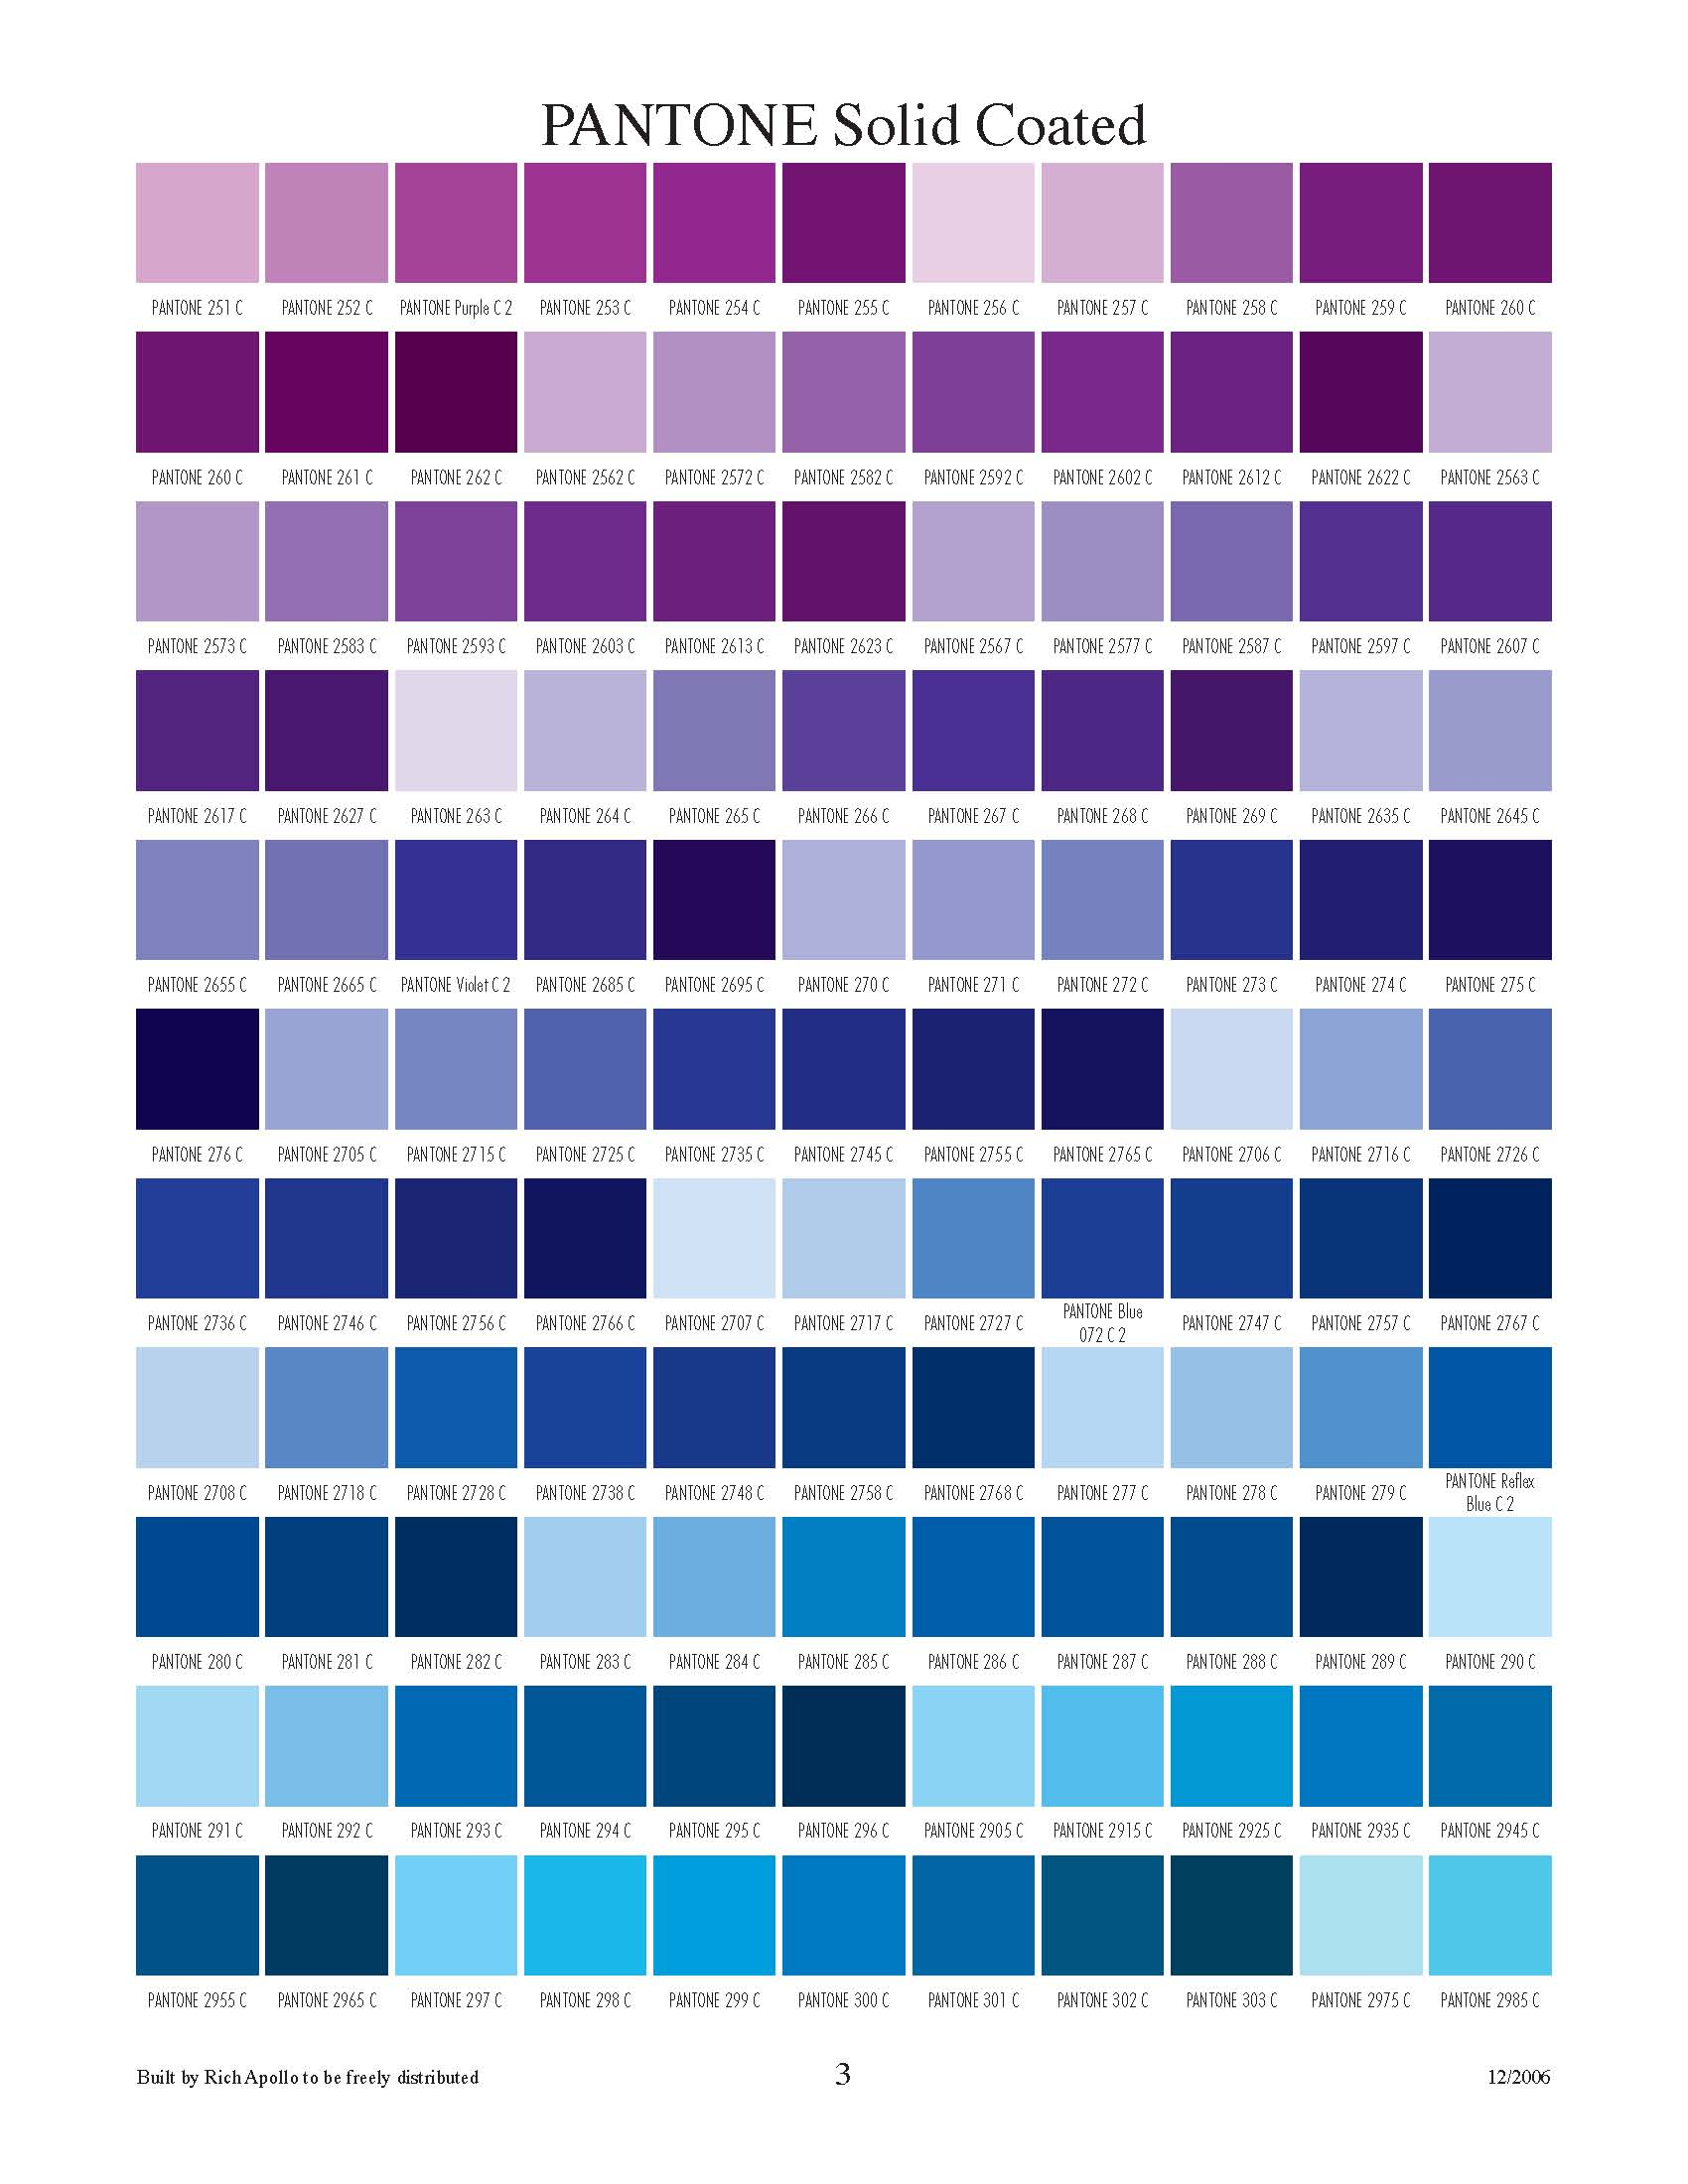 House Colors Colors And Pantone Swatches On Pinterest